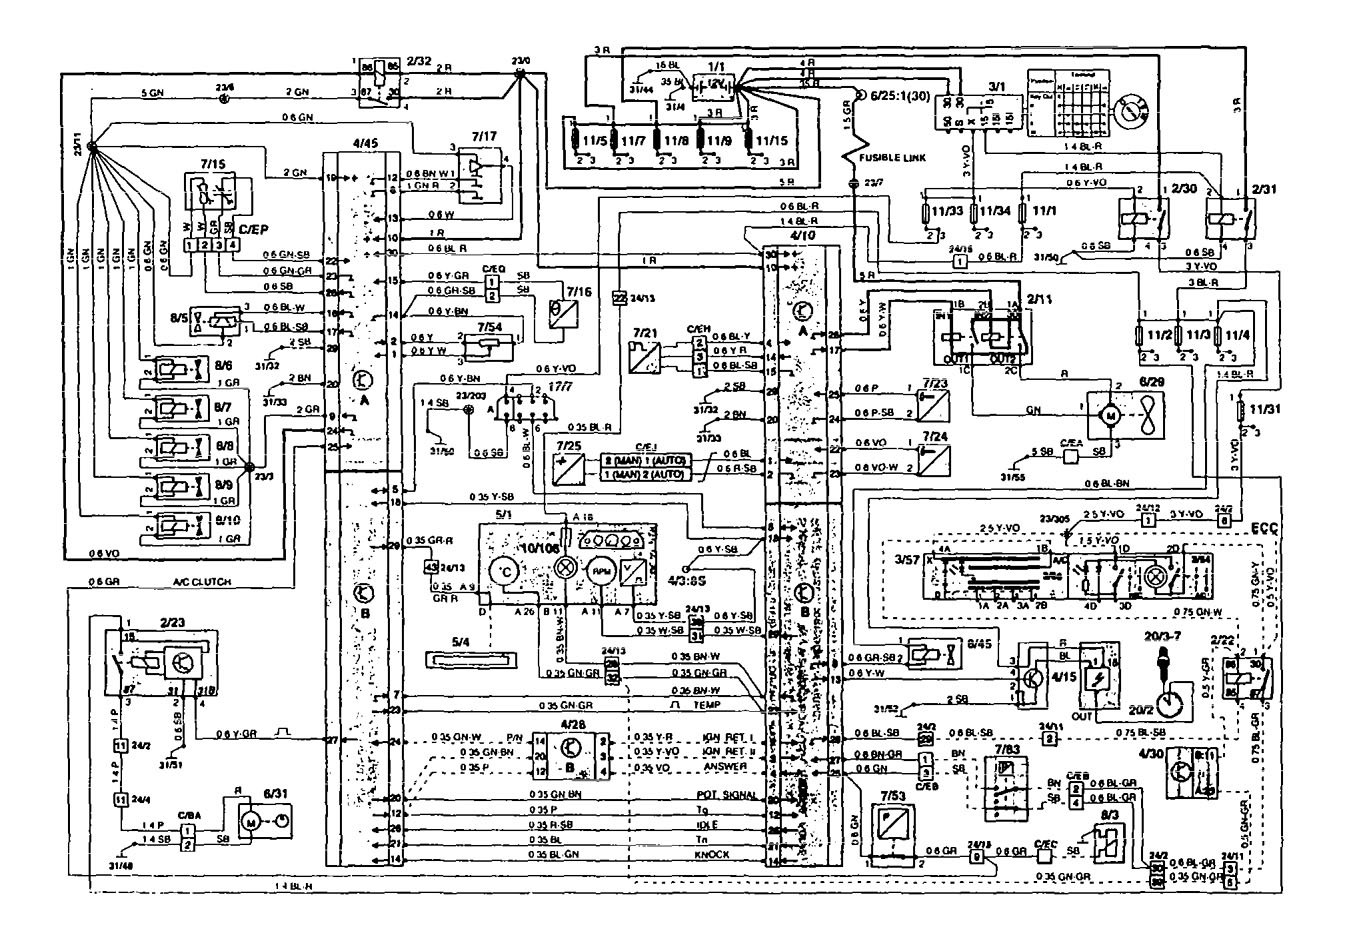 1994 volvo 850 stereo wiring diagram 1994 volvo 850 air